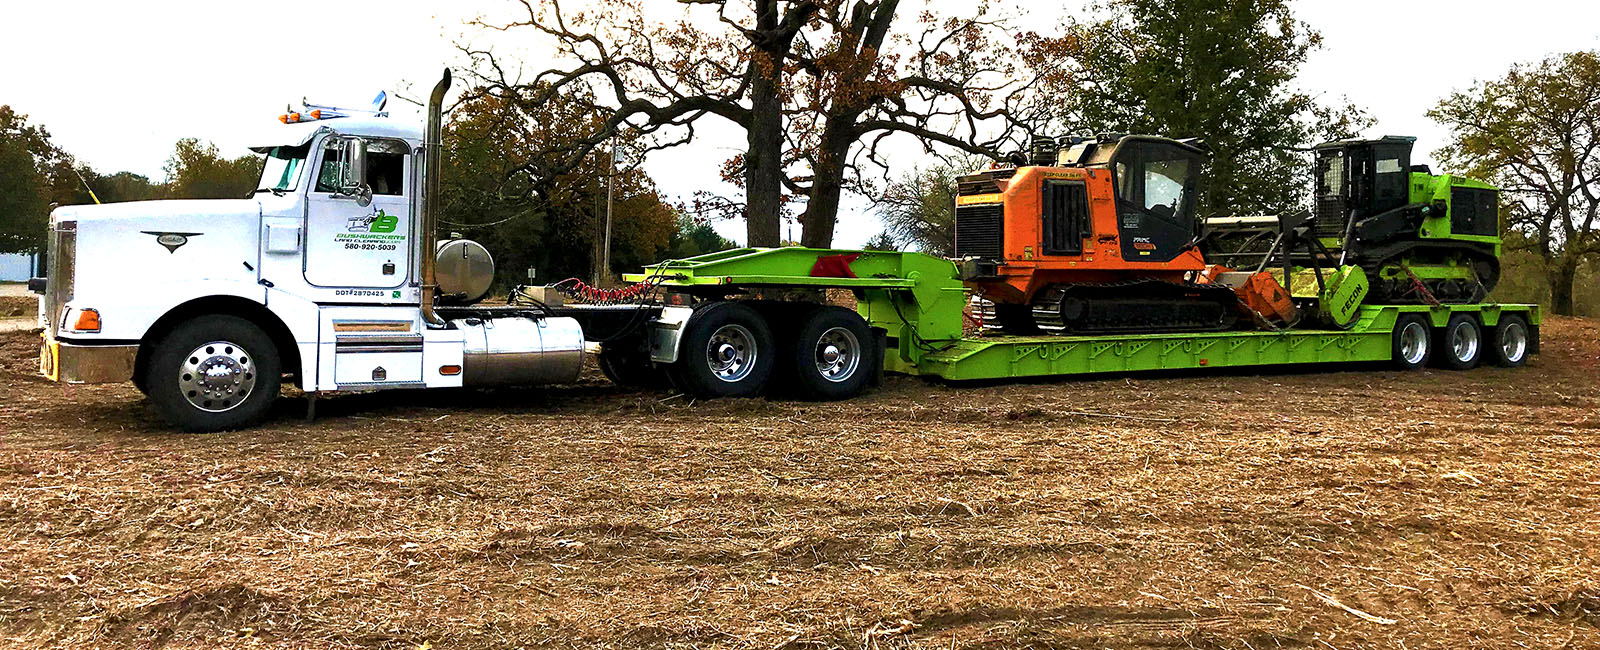 Tractor Forestry Package : Bushwackers land clearing servicesbushwackers